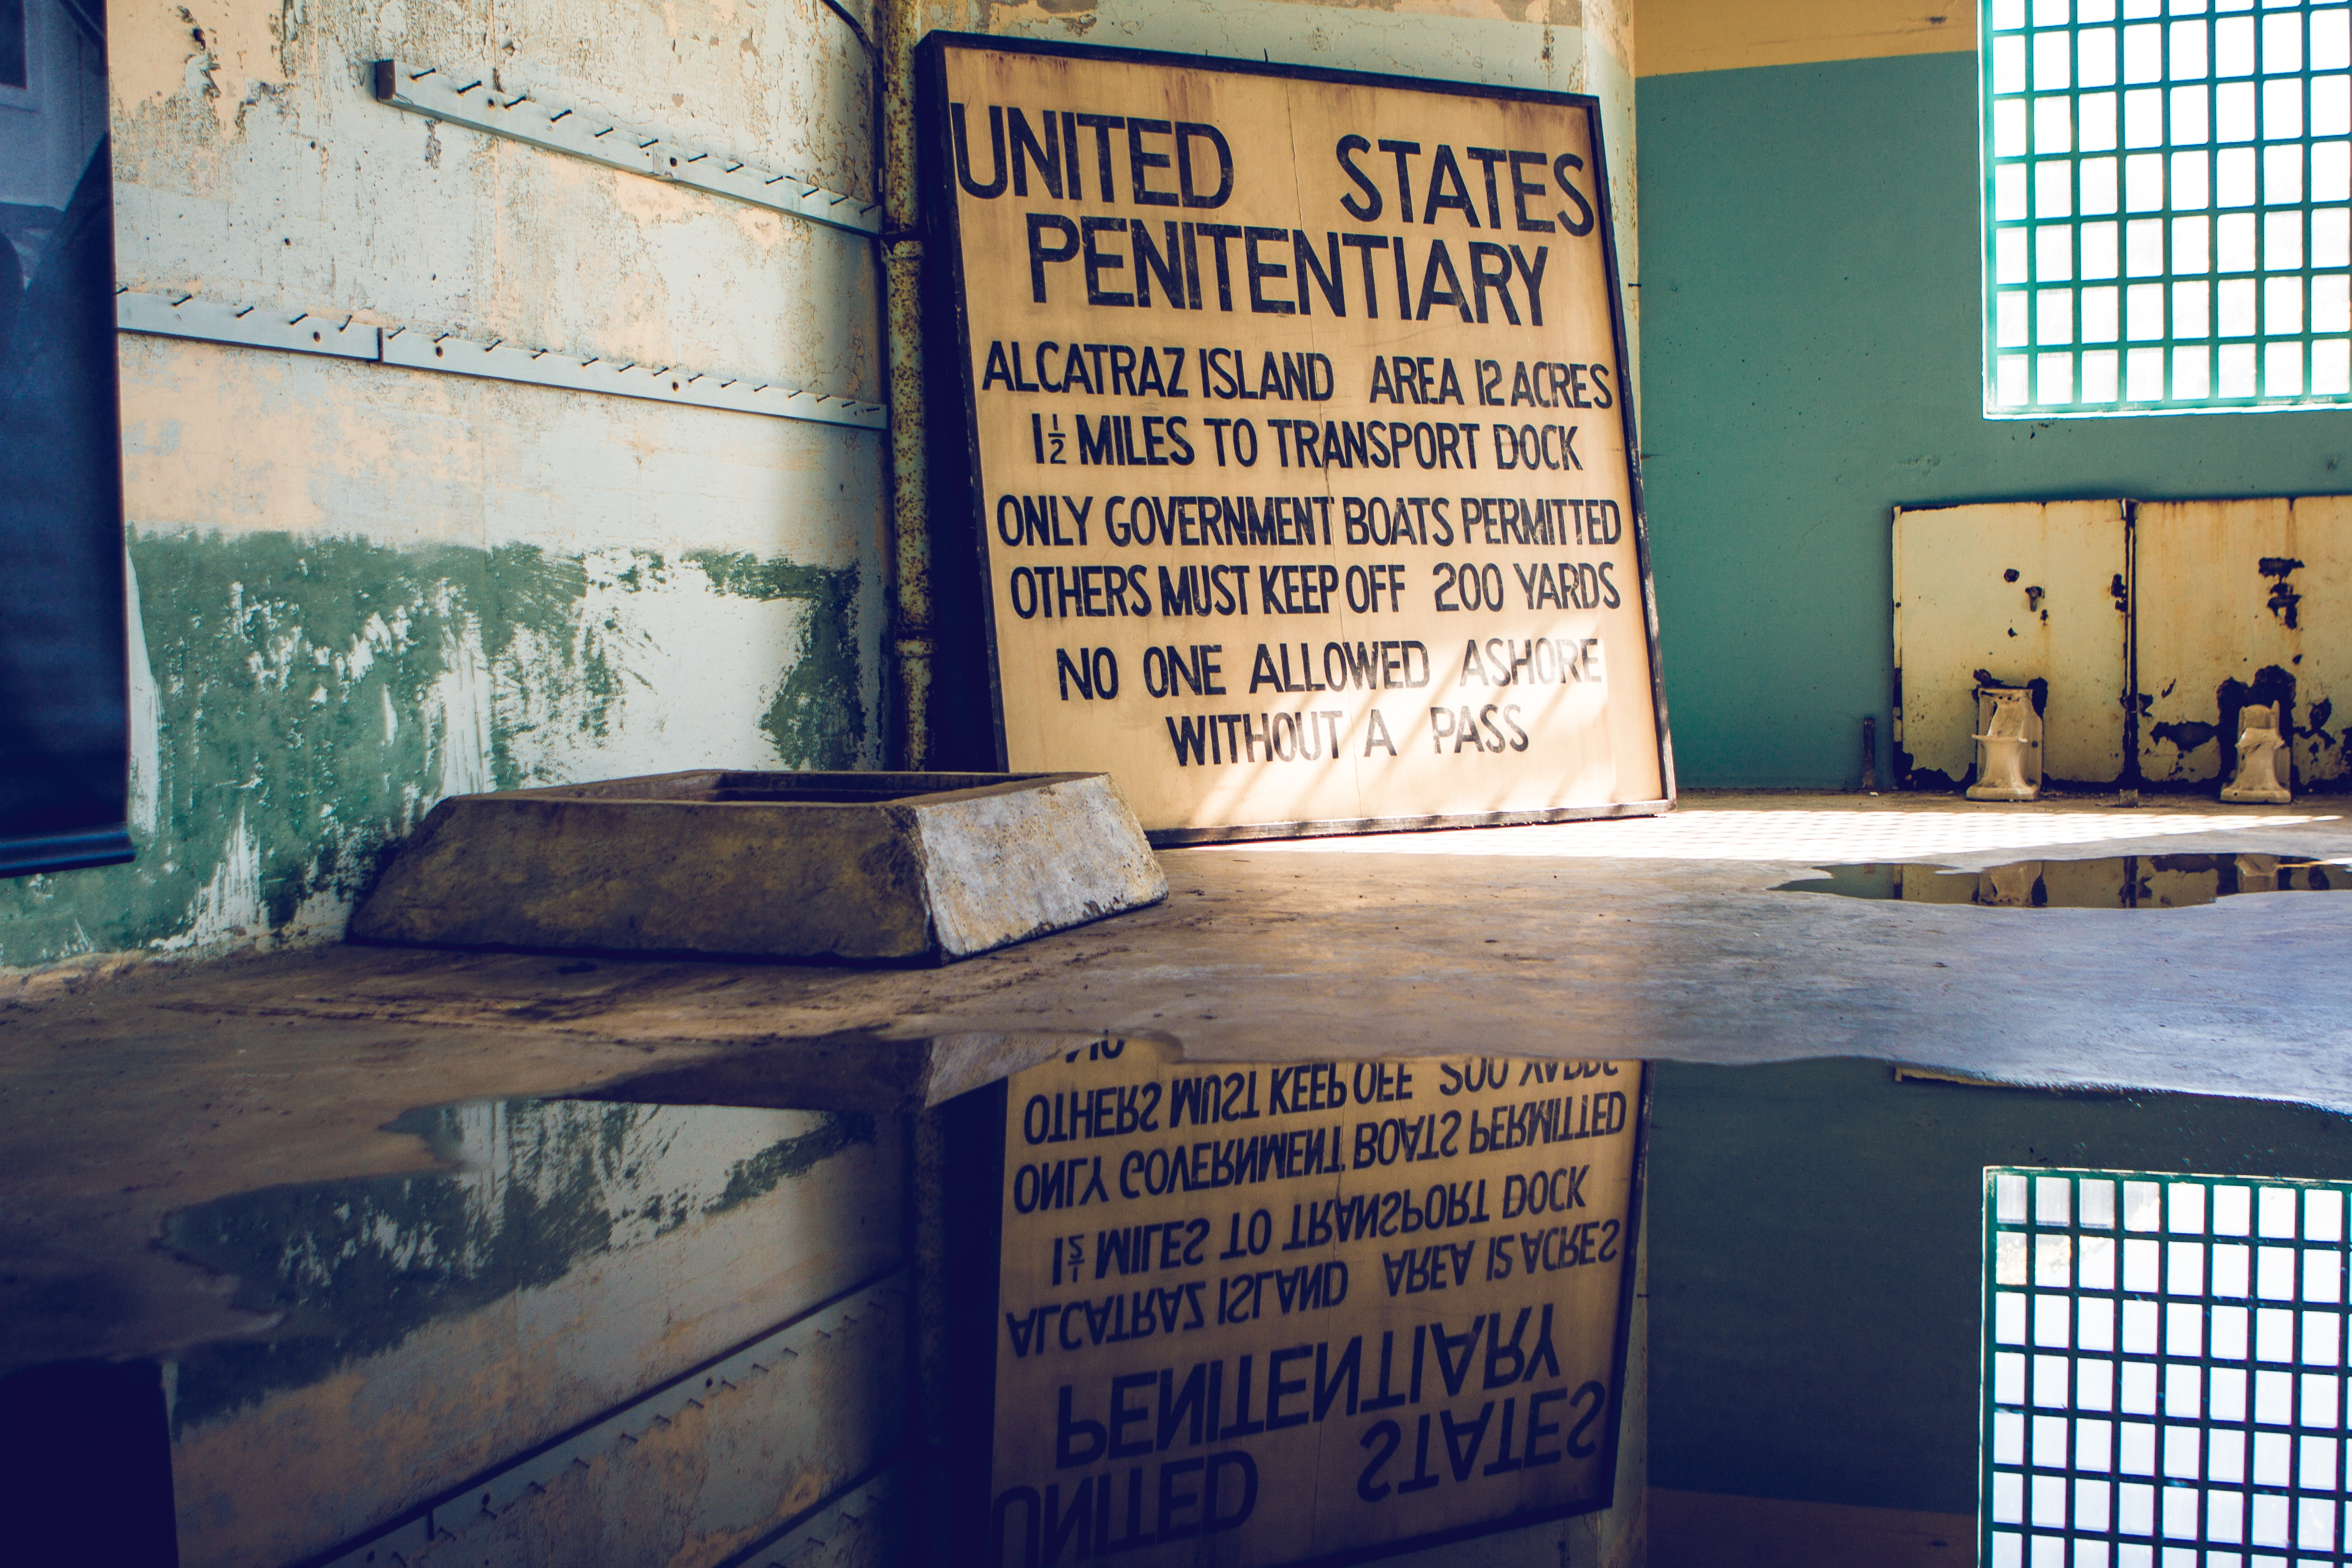 Puddle in an abandoned jail cell reflects old yellow sign for the United States Penitentiary.